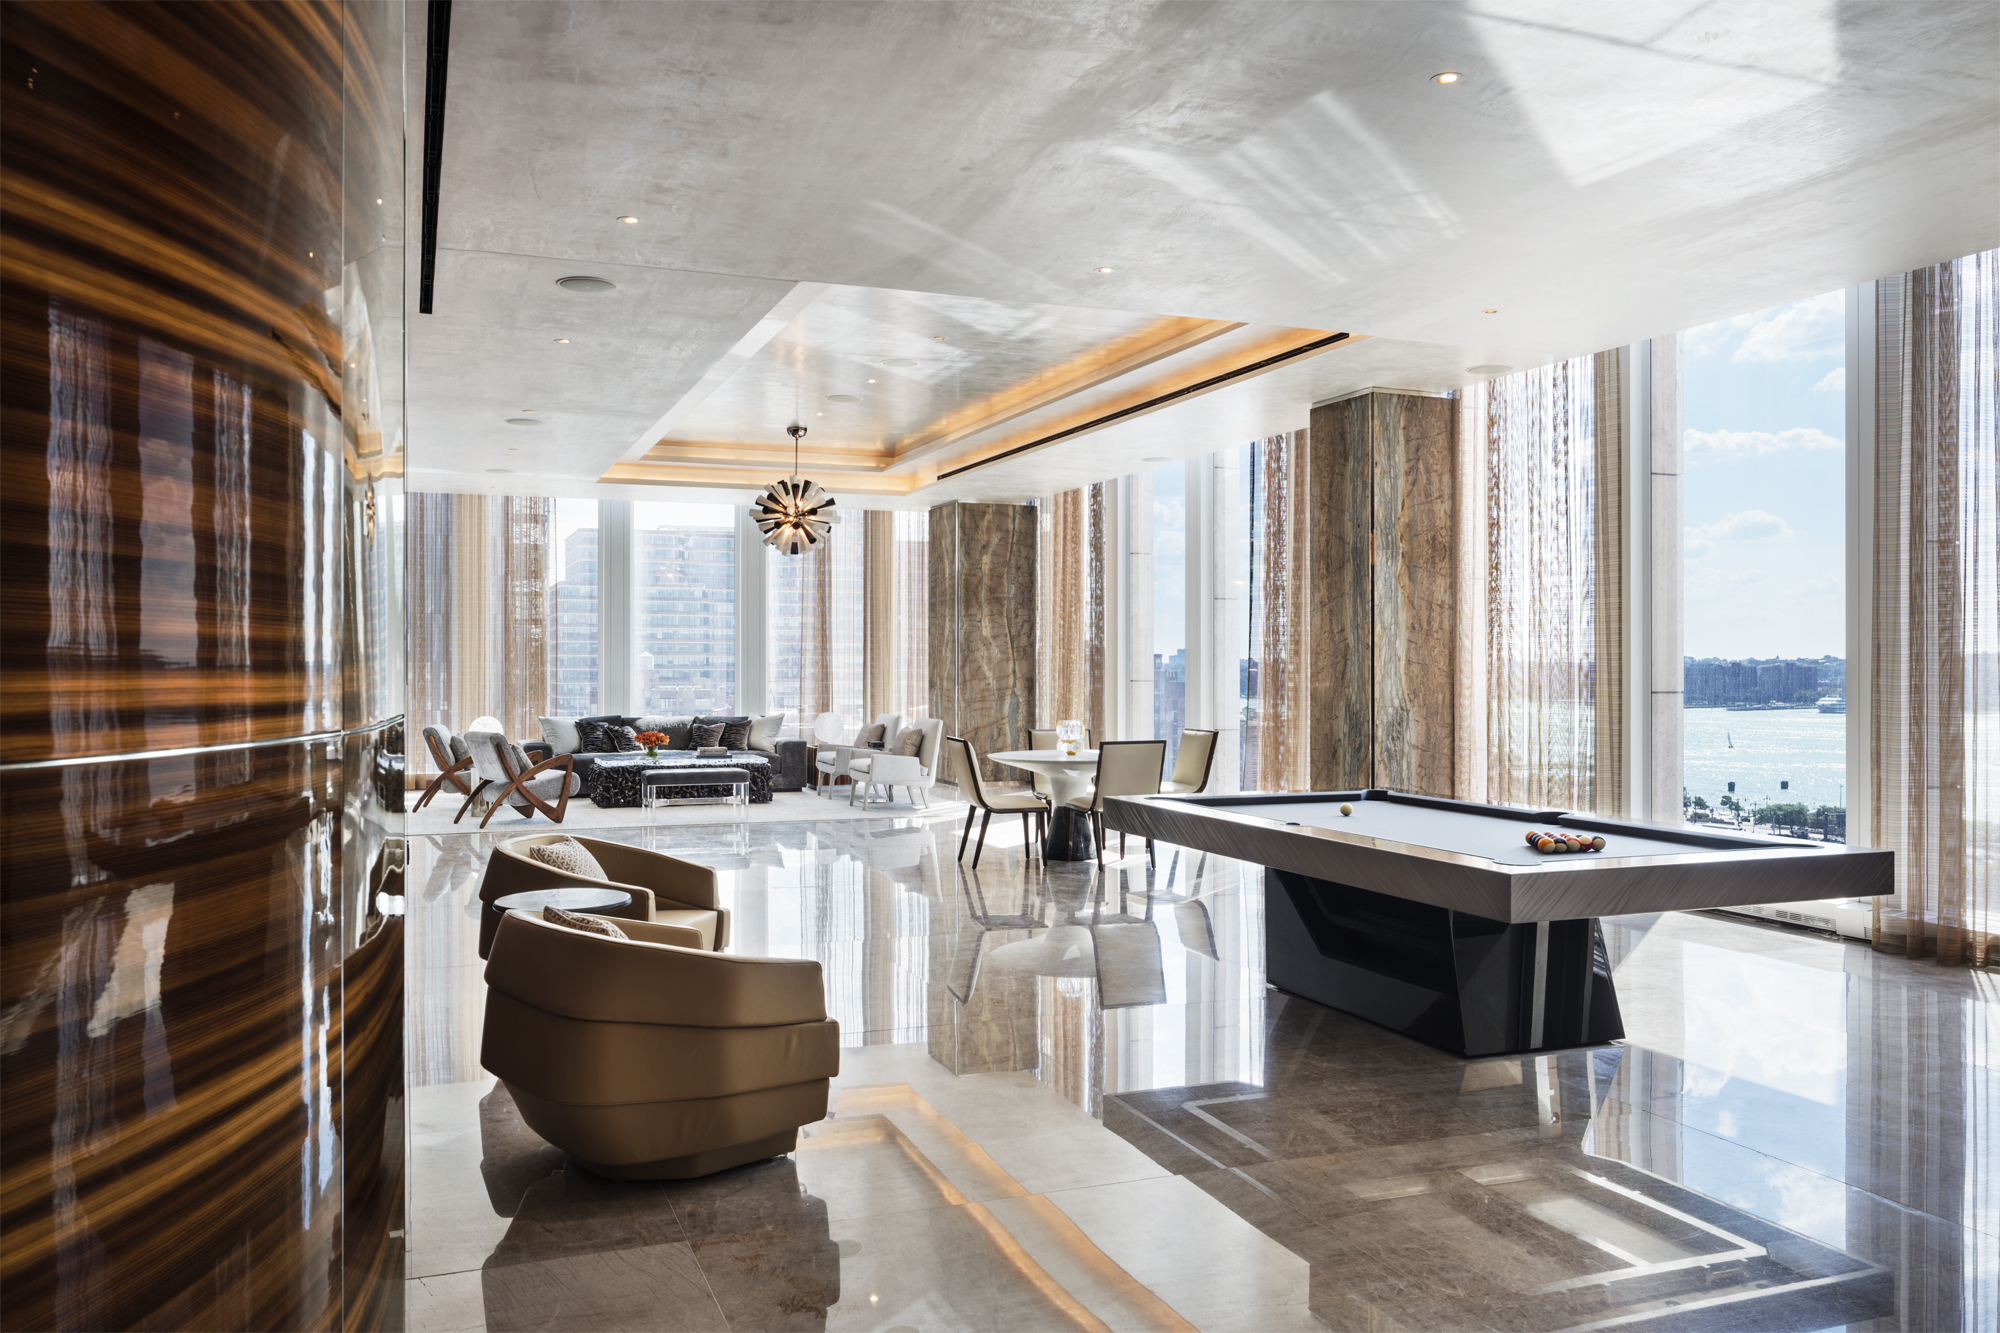 35 Hudson Yards_Amenities_Lounge_Photo Courtesy of Related Companies by Scott Frances.jpg